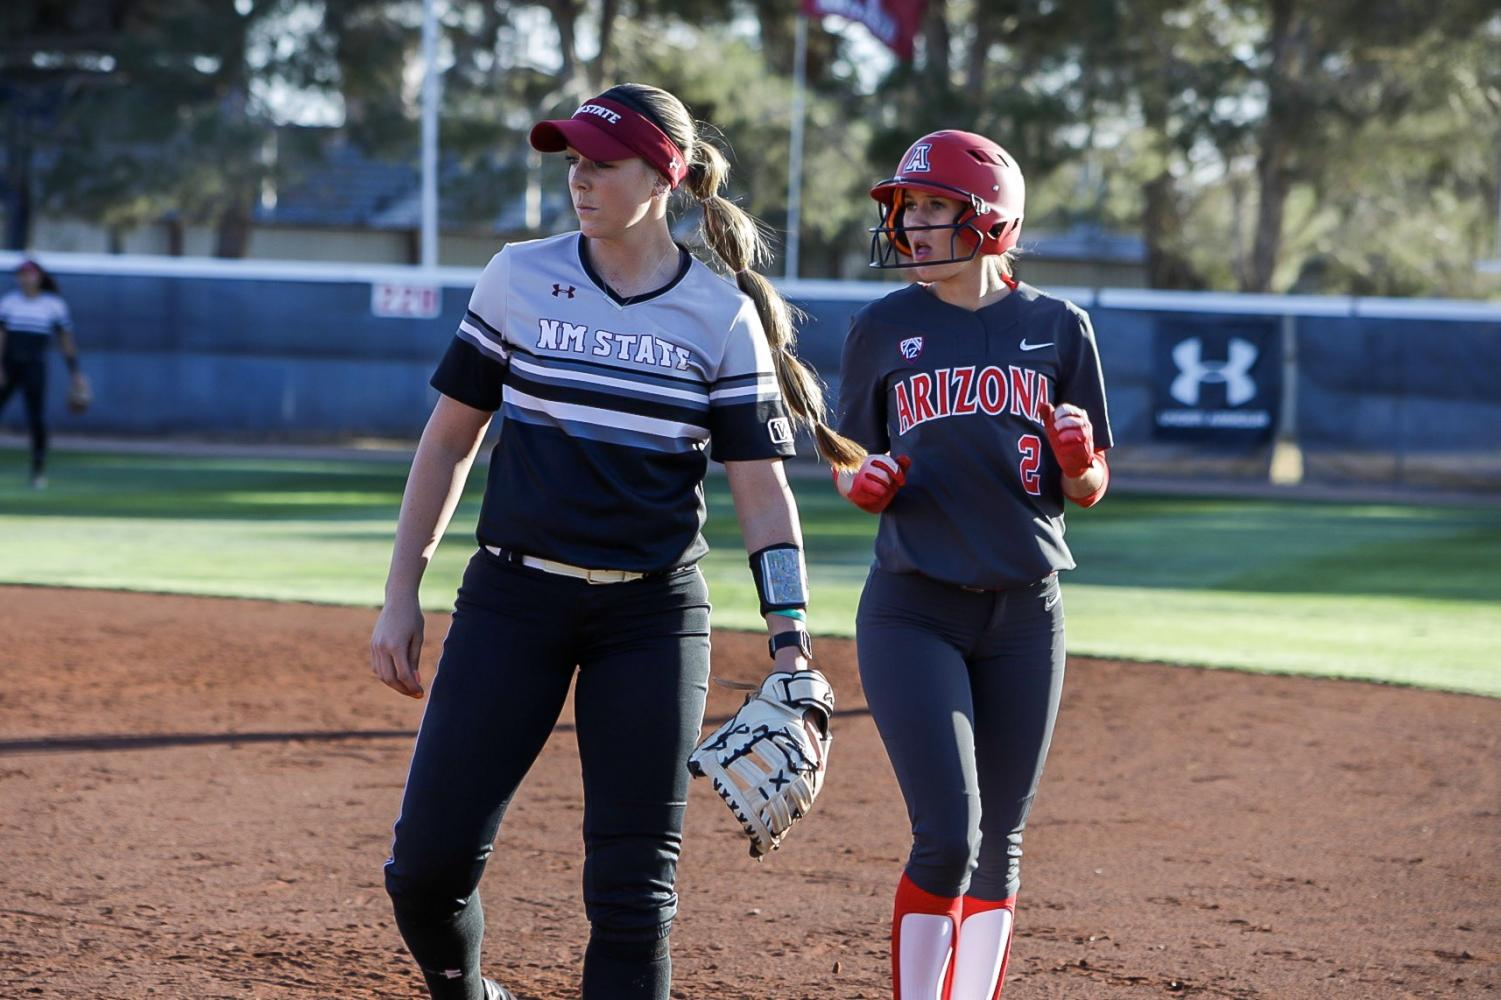 New Mexico State musters just seven combined hits in their 11-3 and 11-1 losses to U of A in the Tuesday night doubleheader.